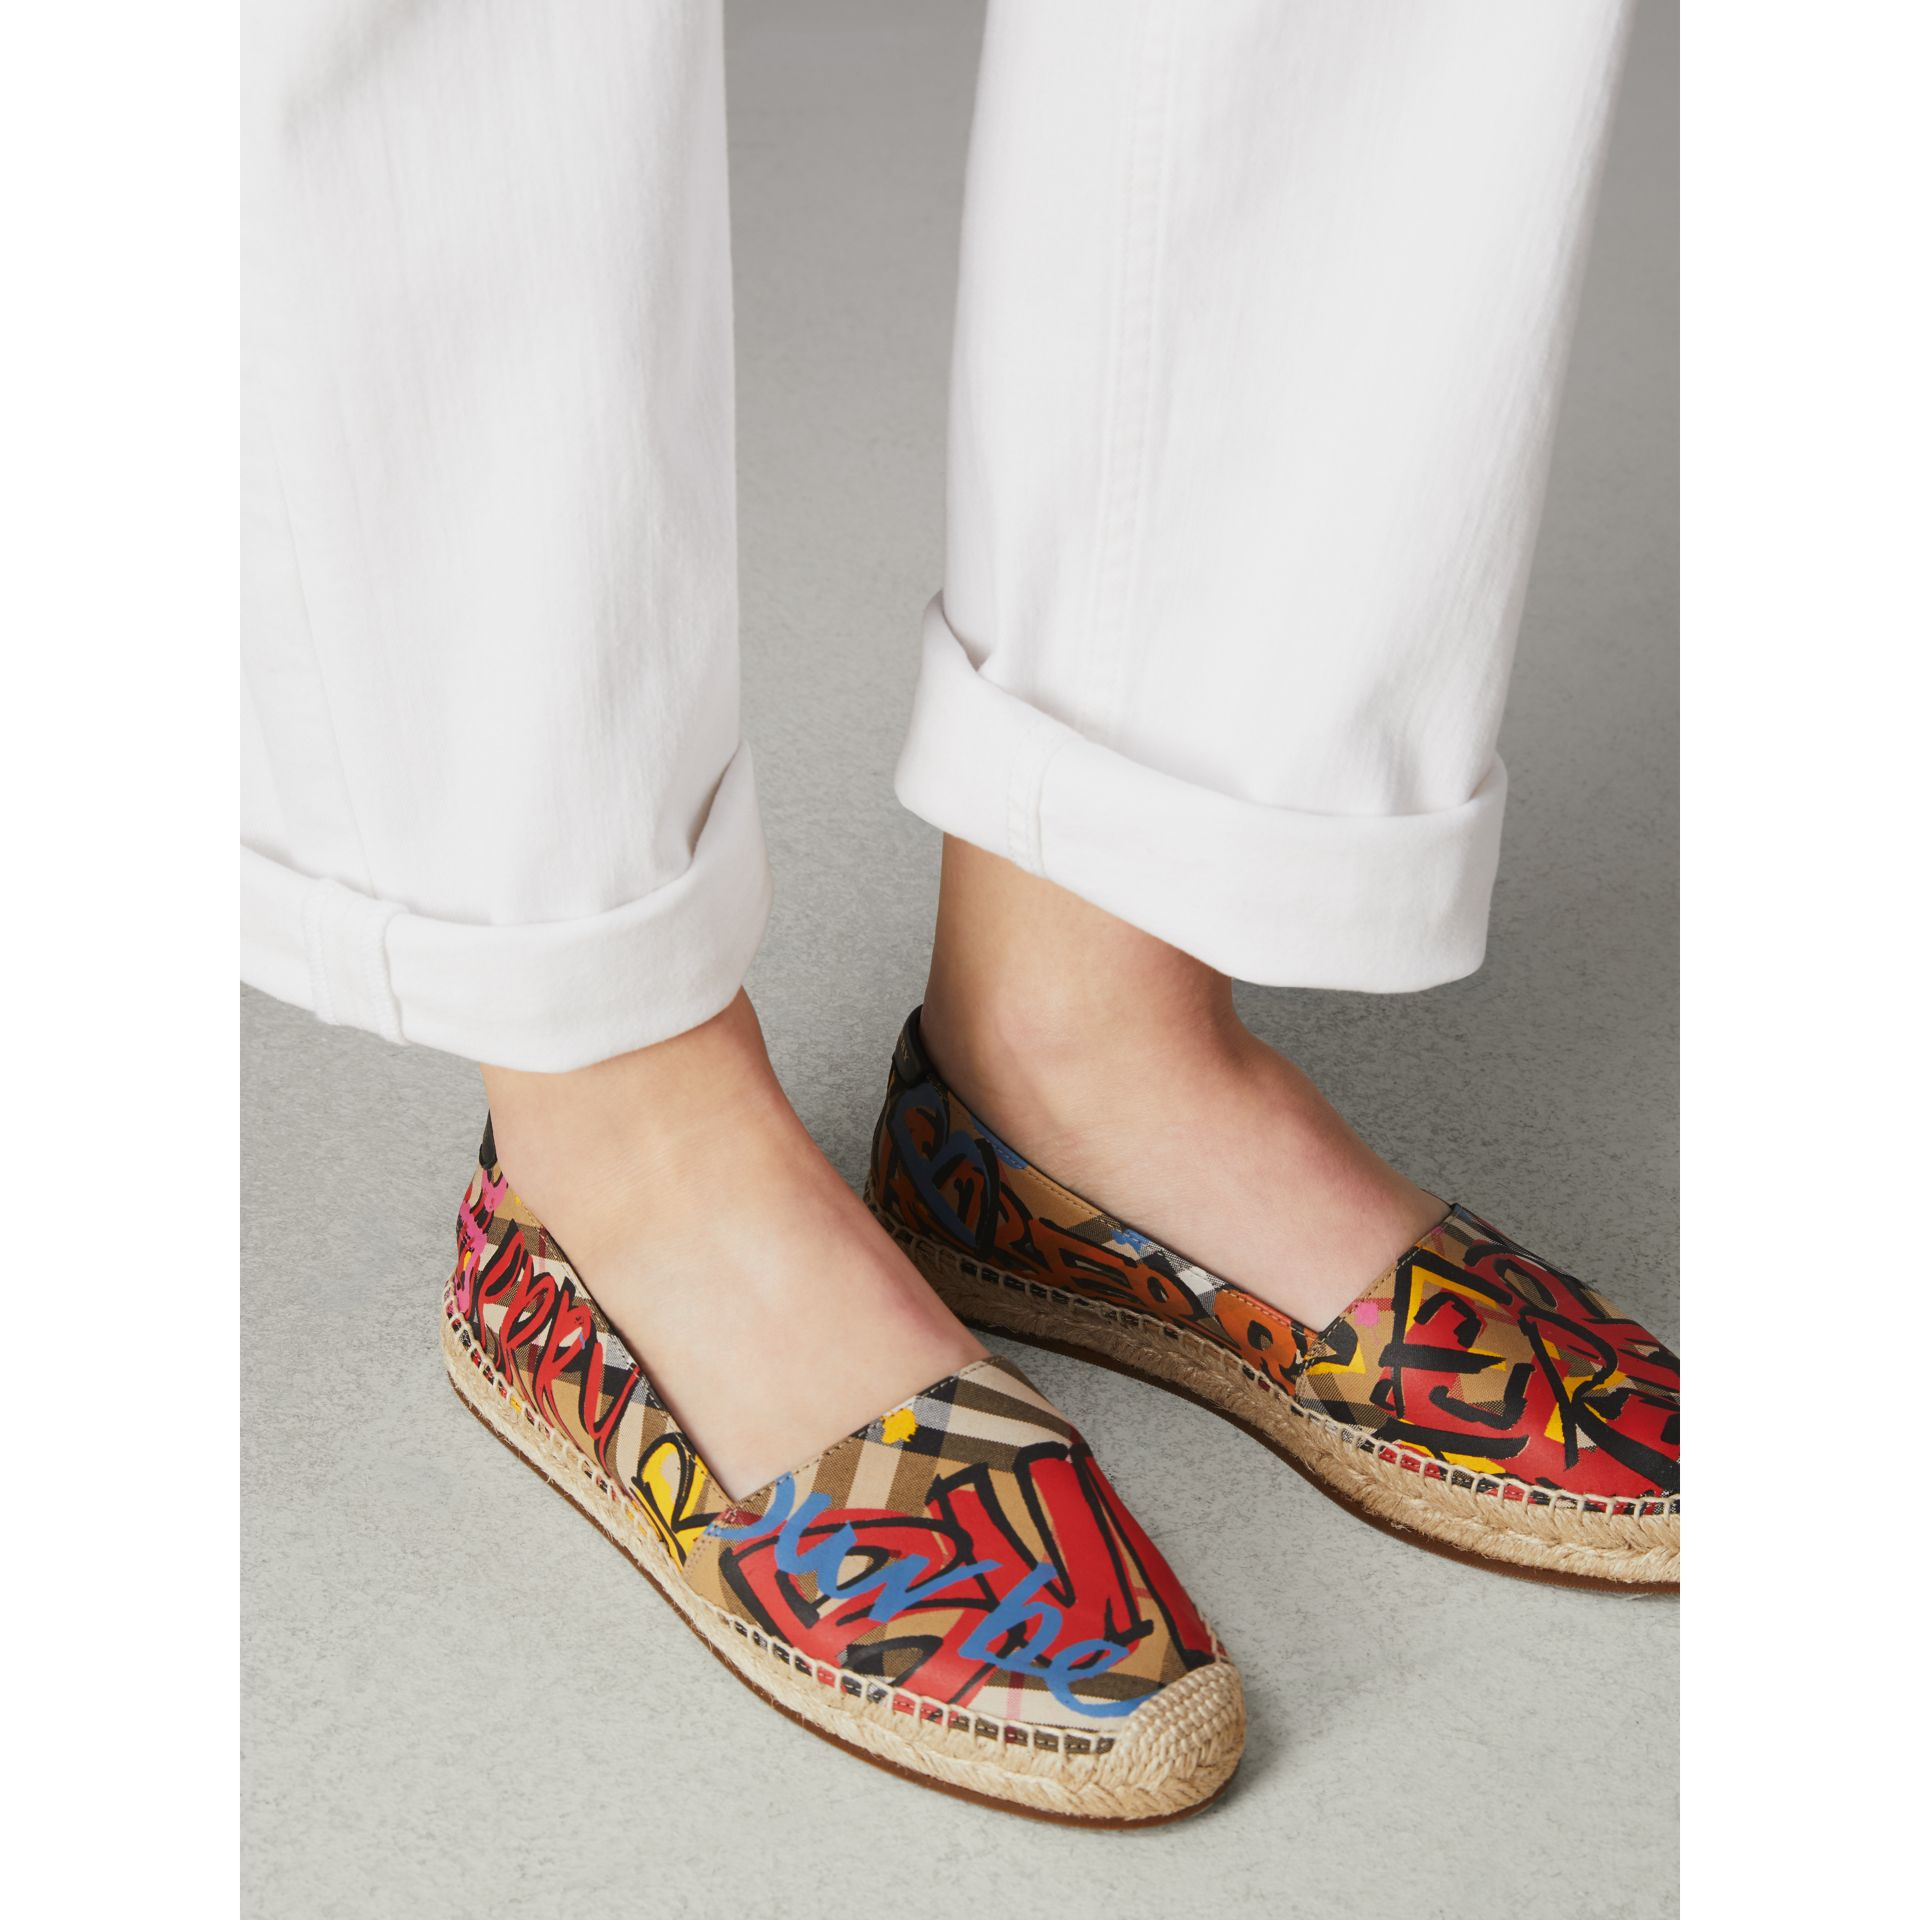 Graffiti Print Vintage Check Espadrilles in Antique Yellow - Women | Burberry - gallery image 2